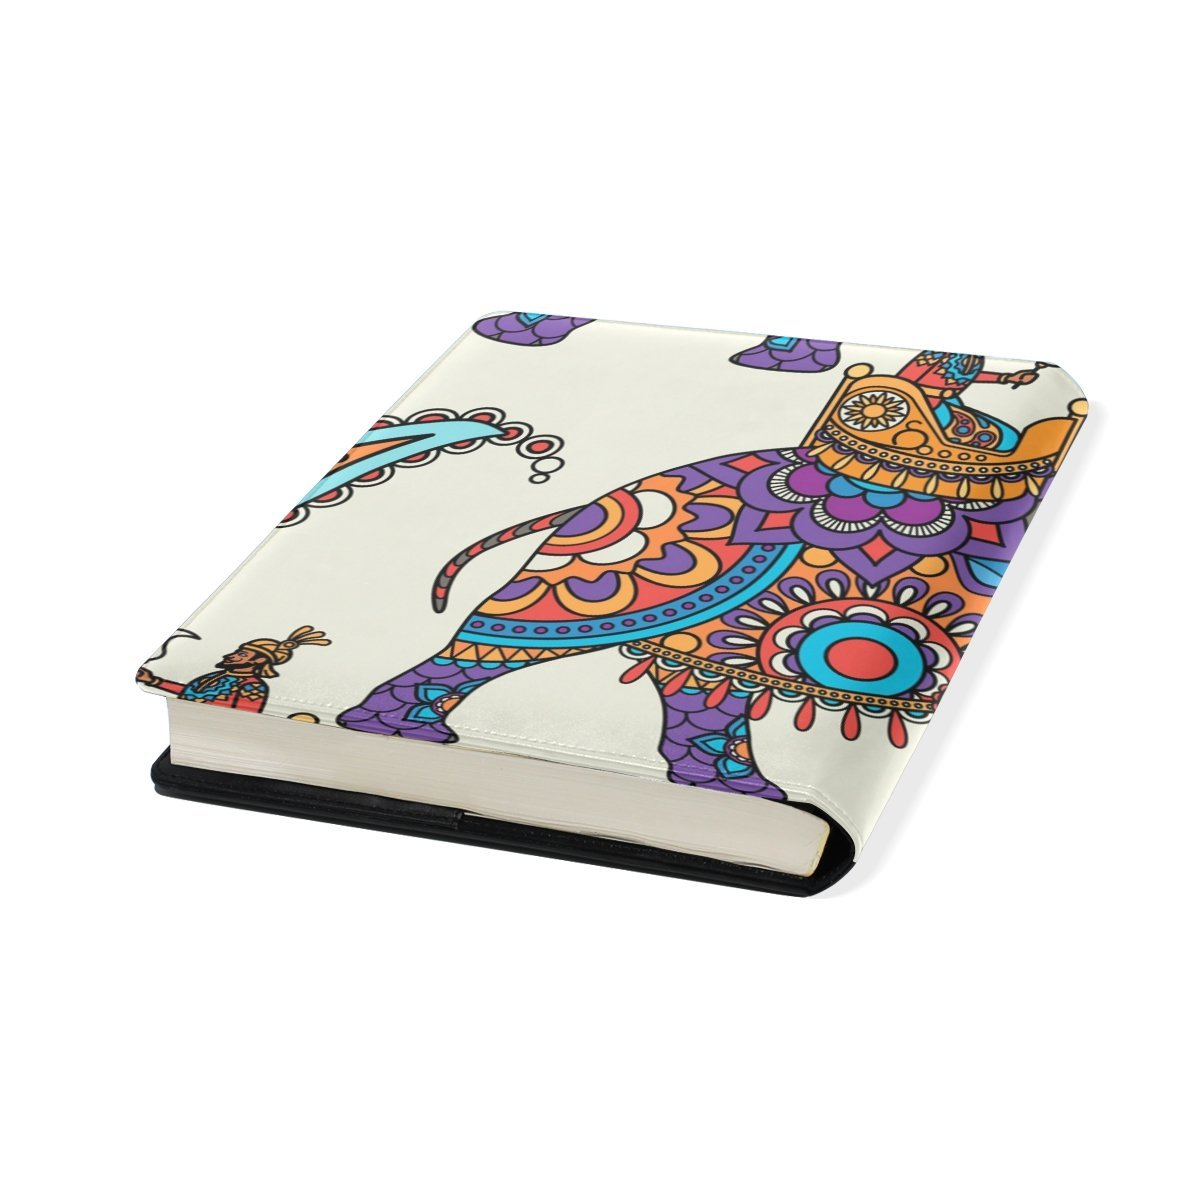 Sunlome Indian Elephant Floral Pattern Stretchable PU Leather Book Cover 9 x 11 Inches Fits for School Hardcover Textbooks